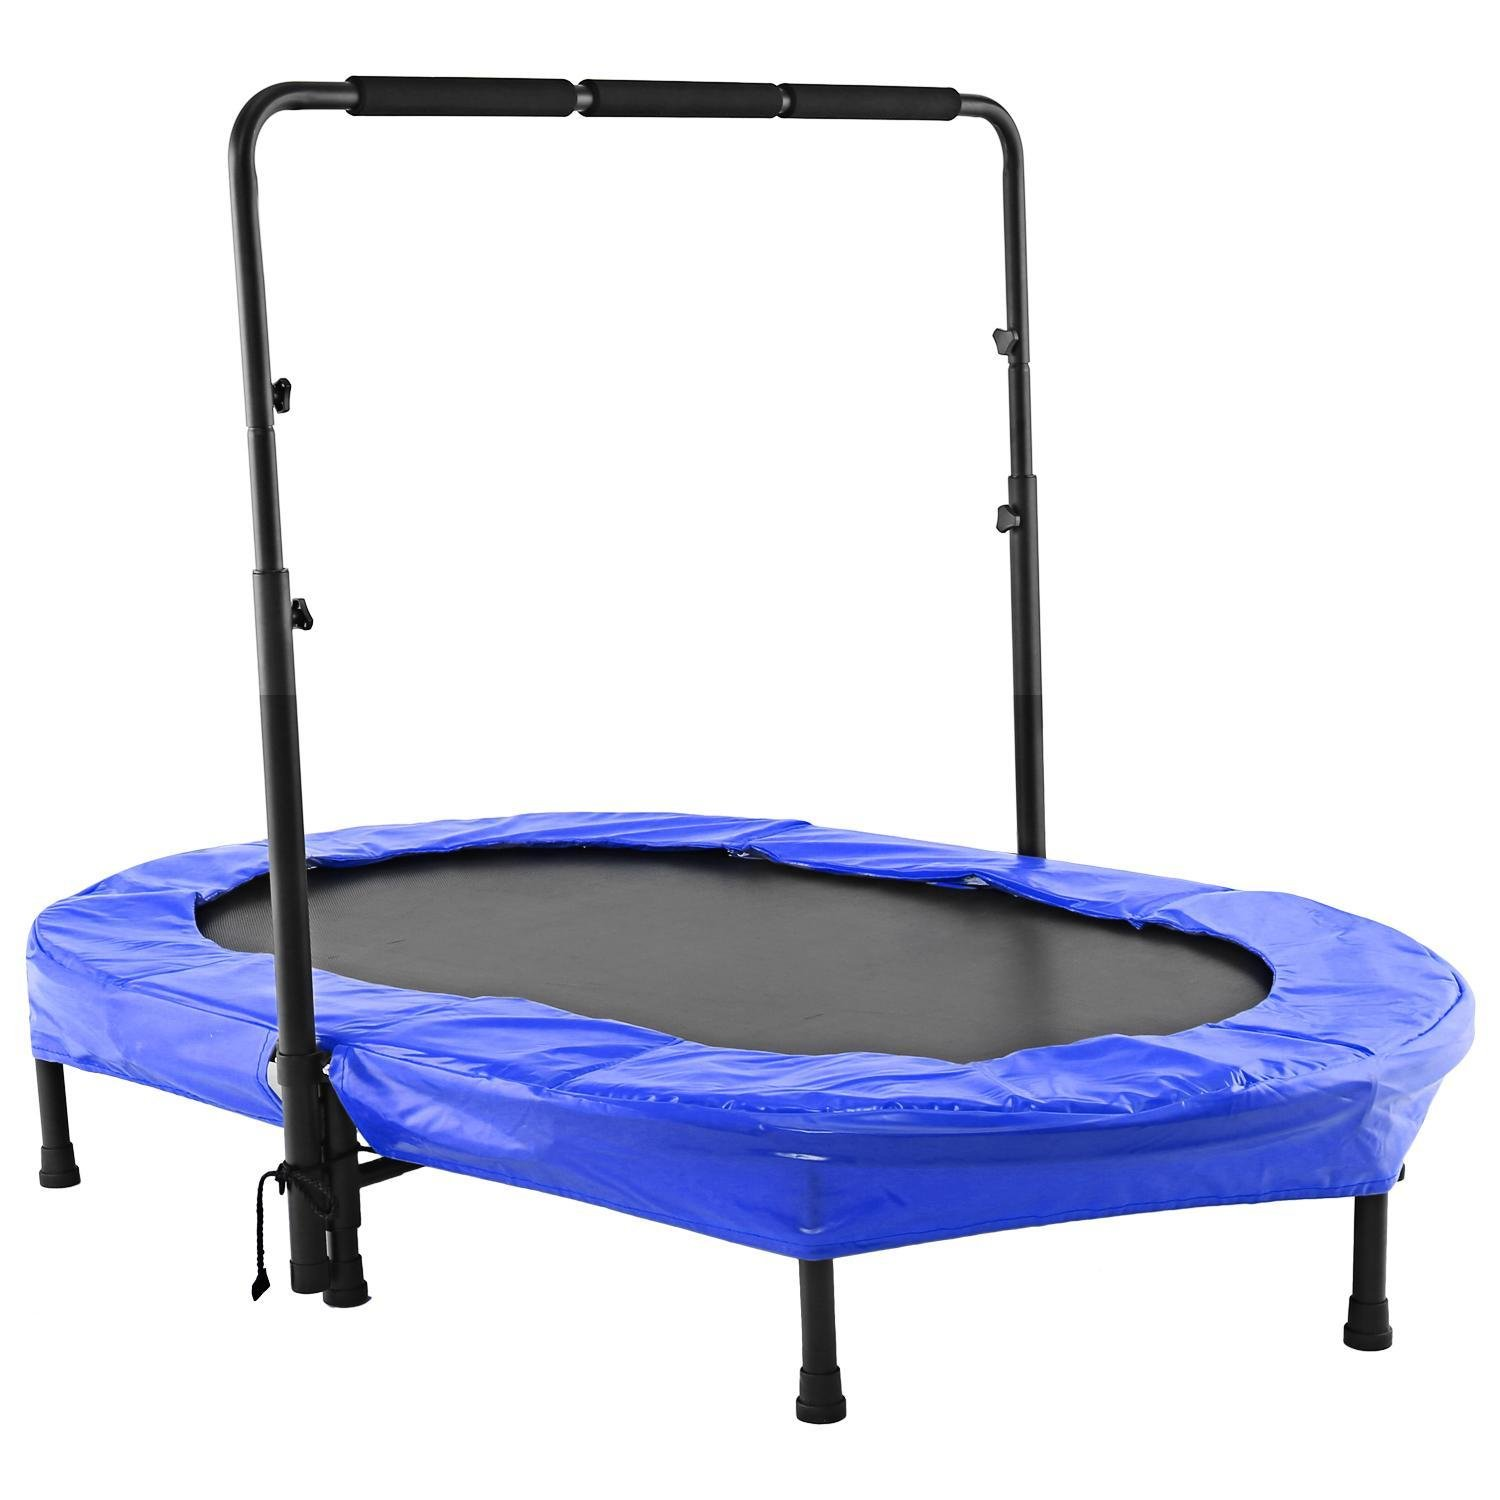 Keland Foldable Rebounder Fitness Trampoline with Safety Pad Adjustable Handlebar, Perfect for Two People, Parent-Child, Two Kids, Adult (Blue)